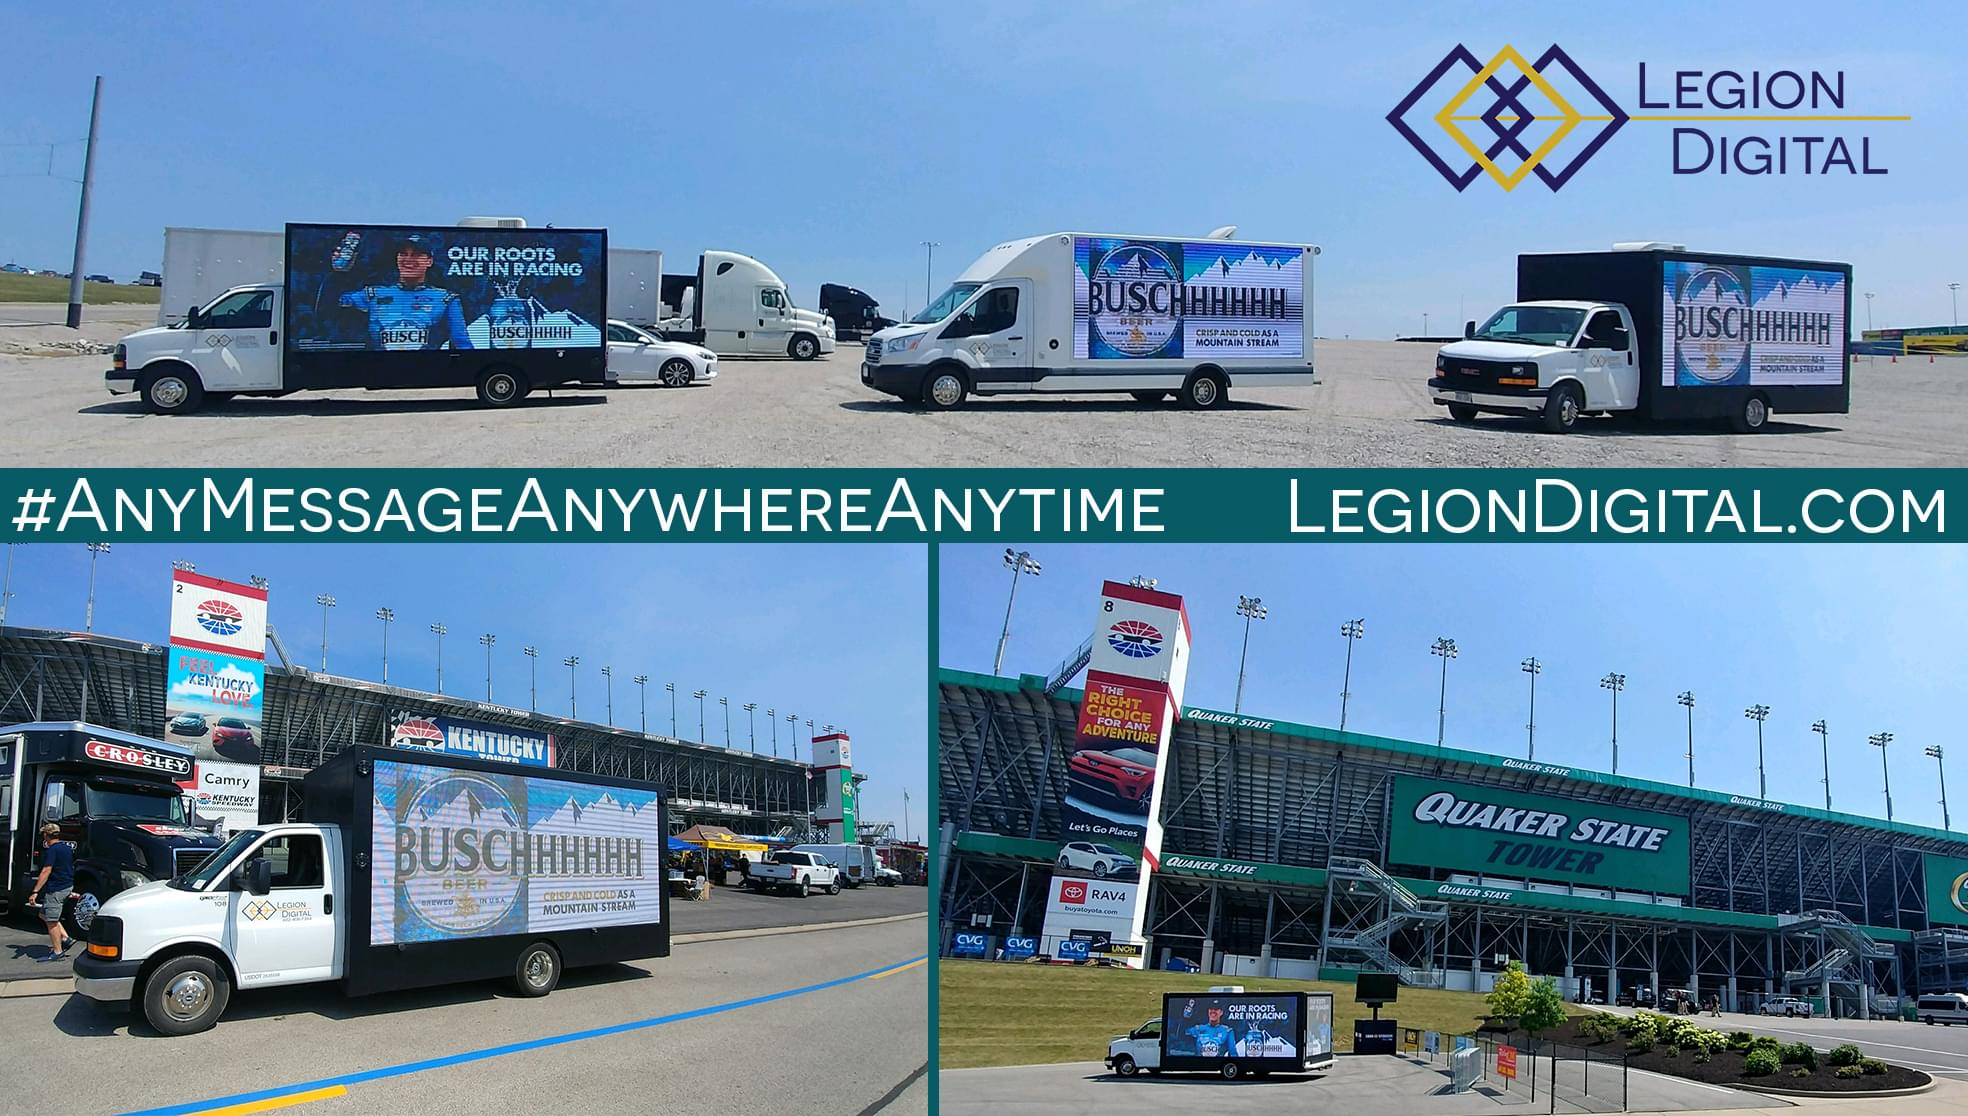 LED Mobile Billboard for Busch at Kentucky Speedway